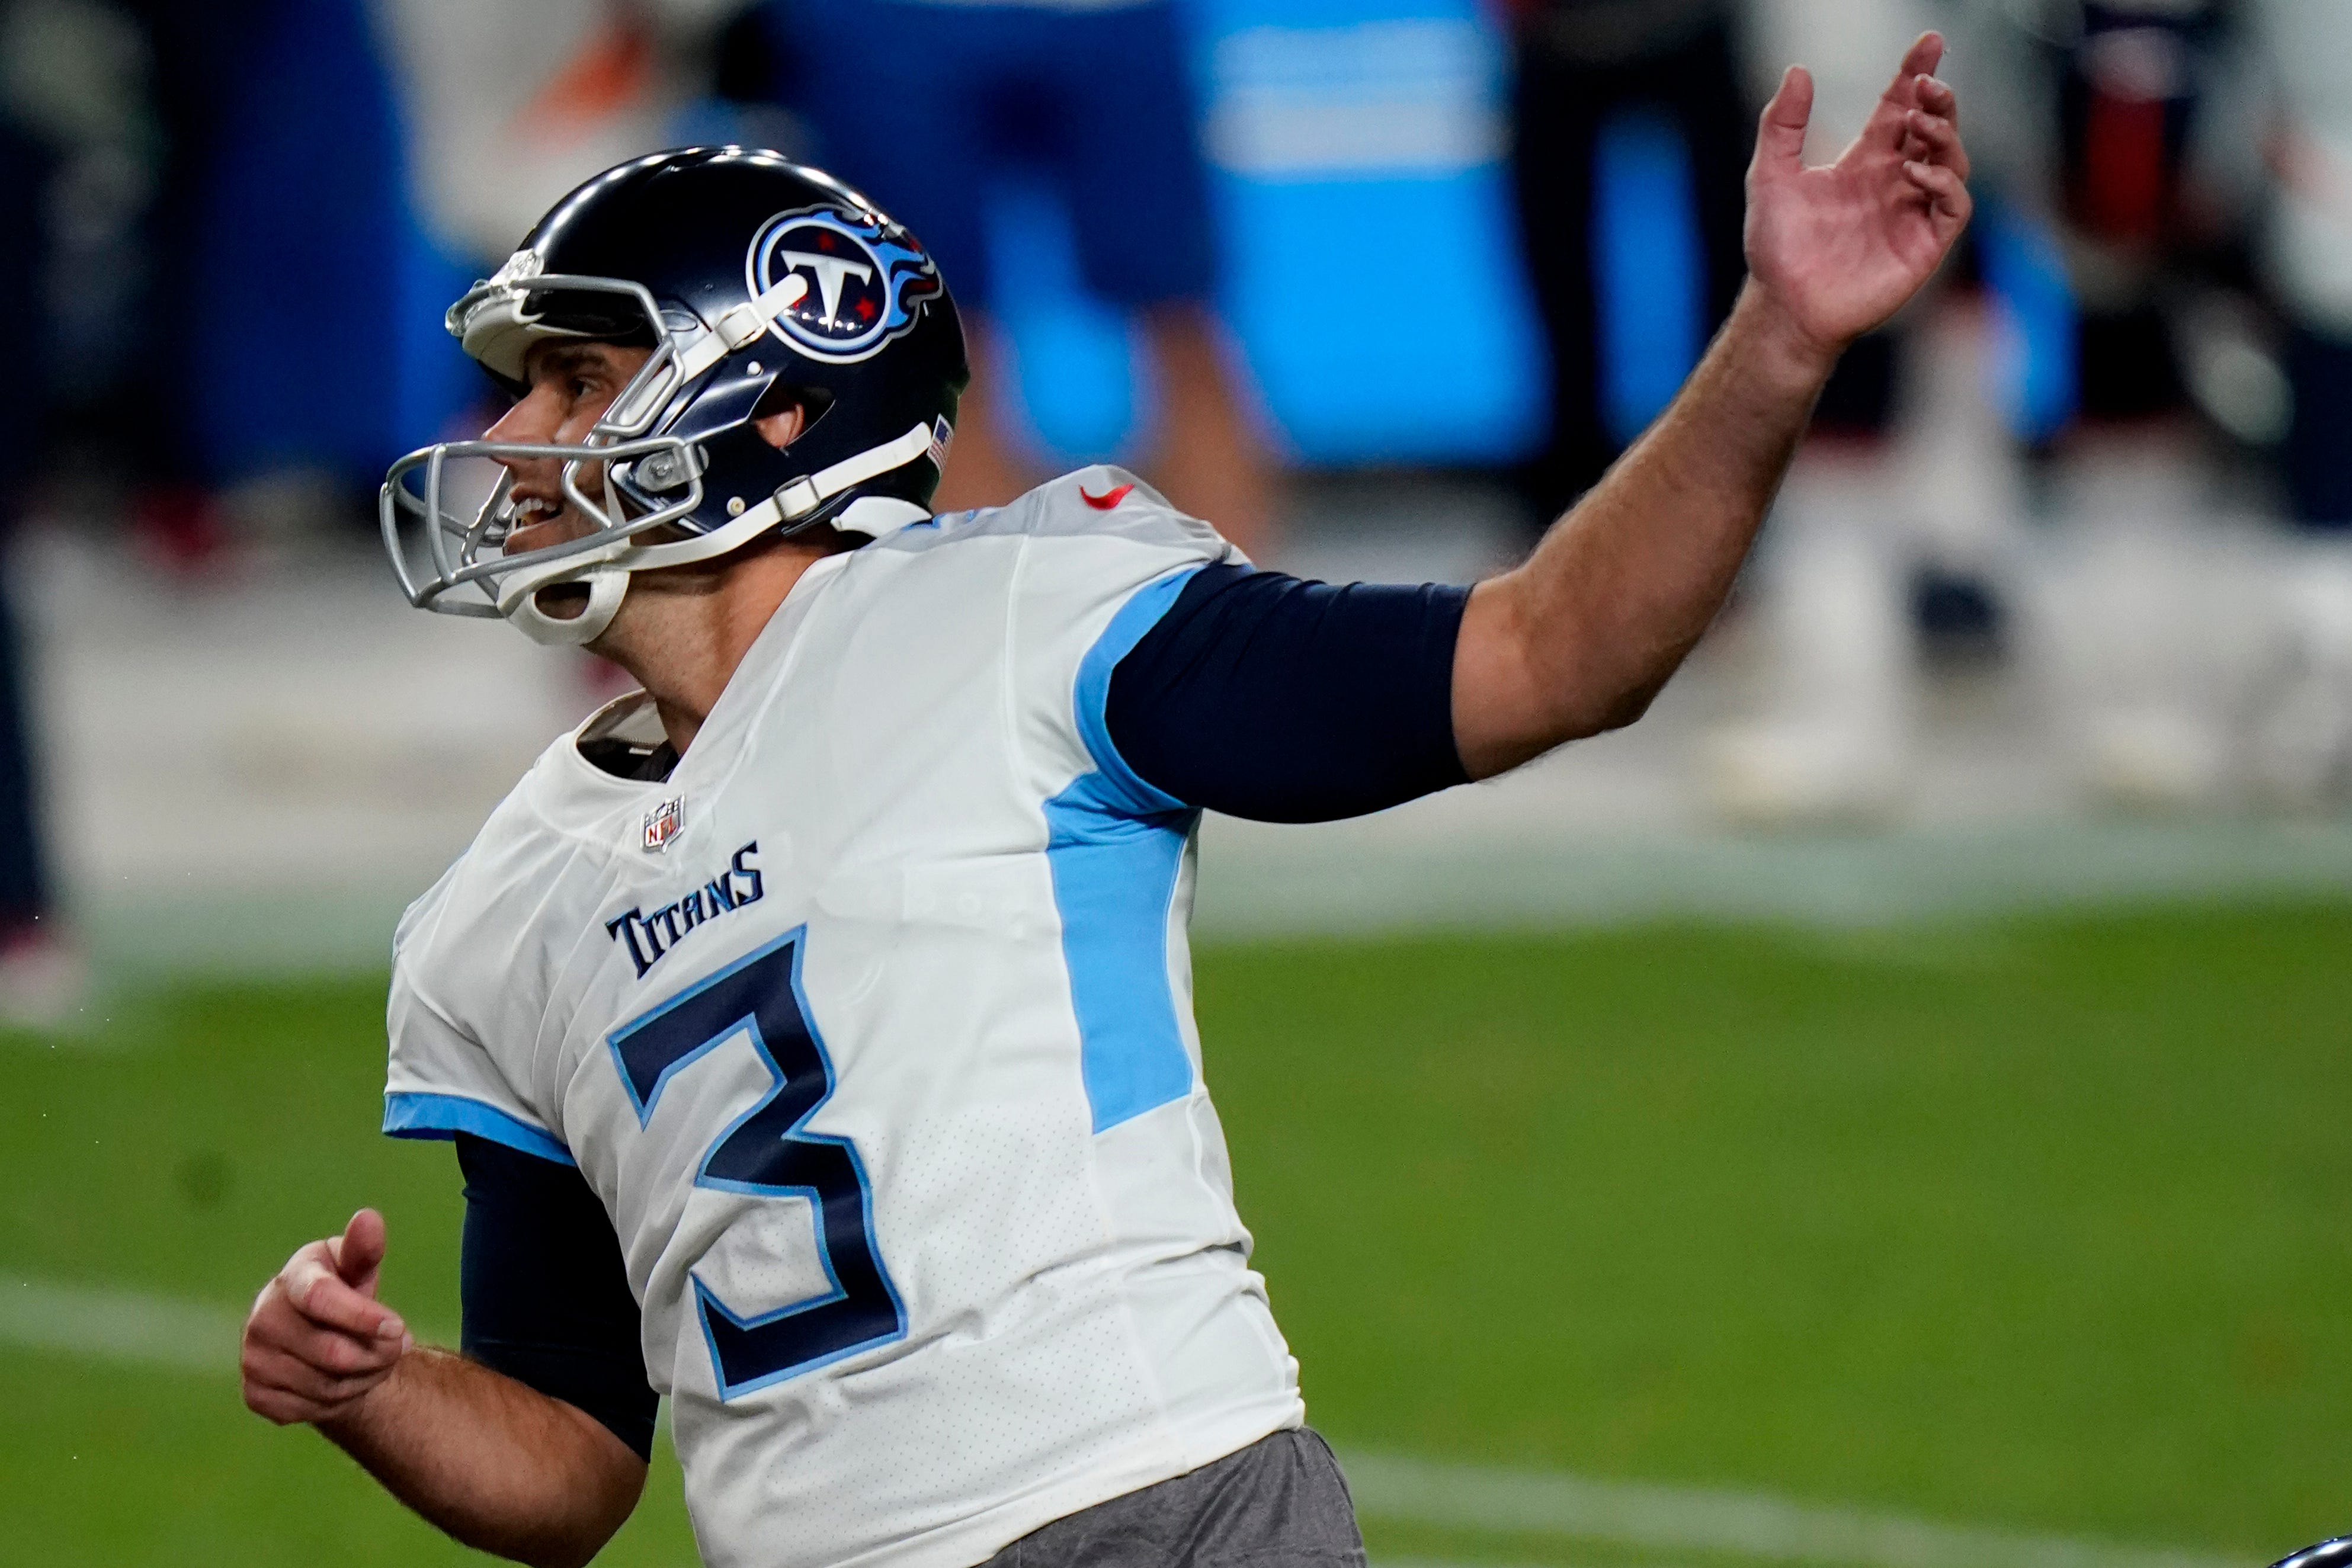 Tennessee Titans' kicking nightmare follows them into 2020: Is Stephen Gostkowski really the answer?